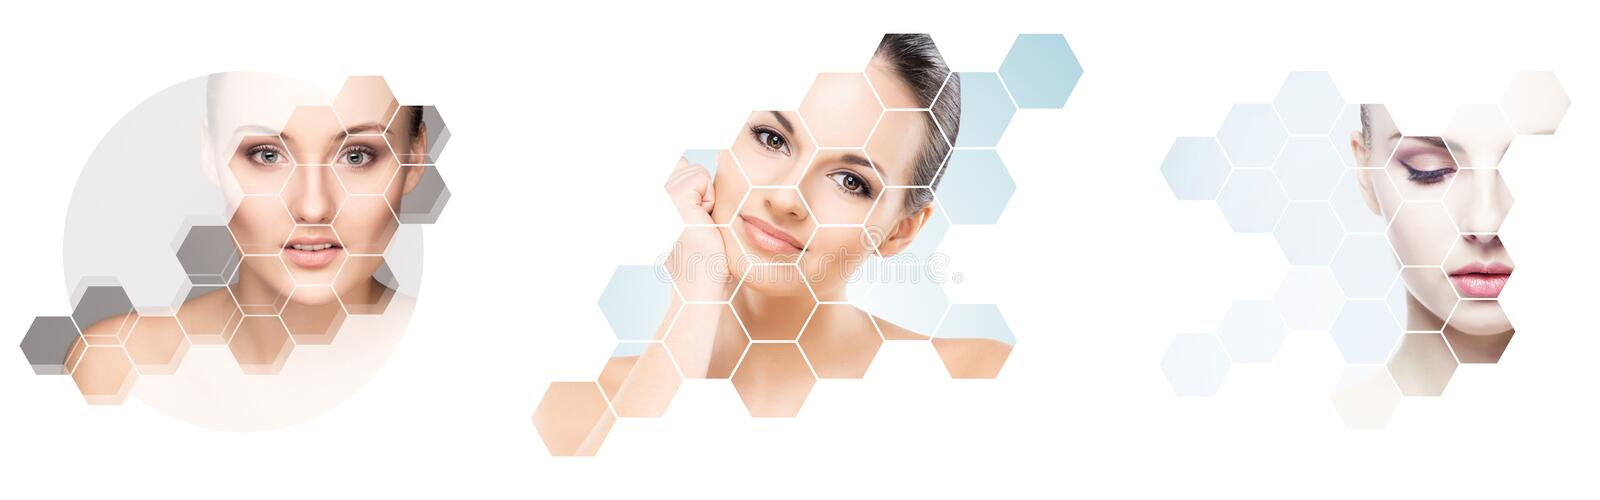 Collage of female portraits. Healthy faces of young women. Spa, face lifting, plastic surgery collage concept. stock illustration